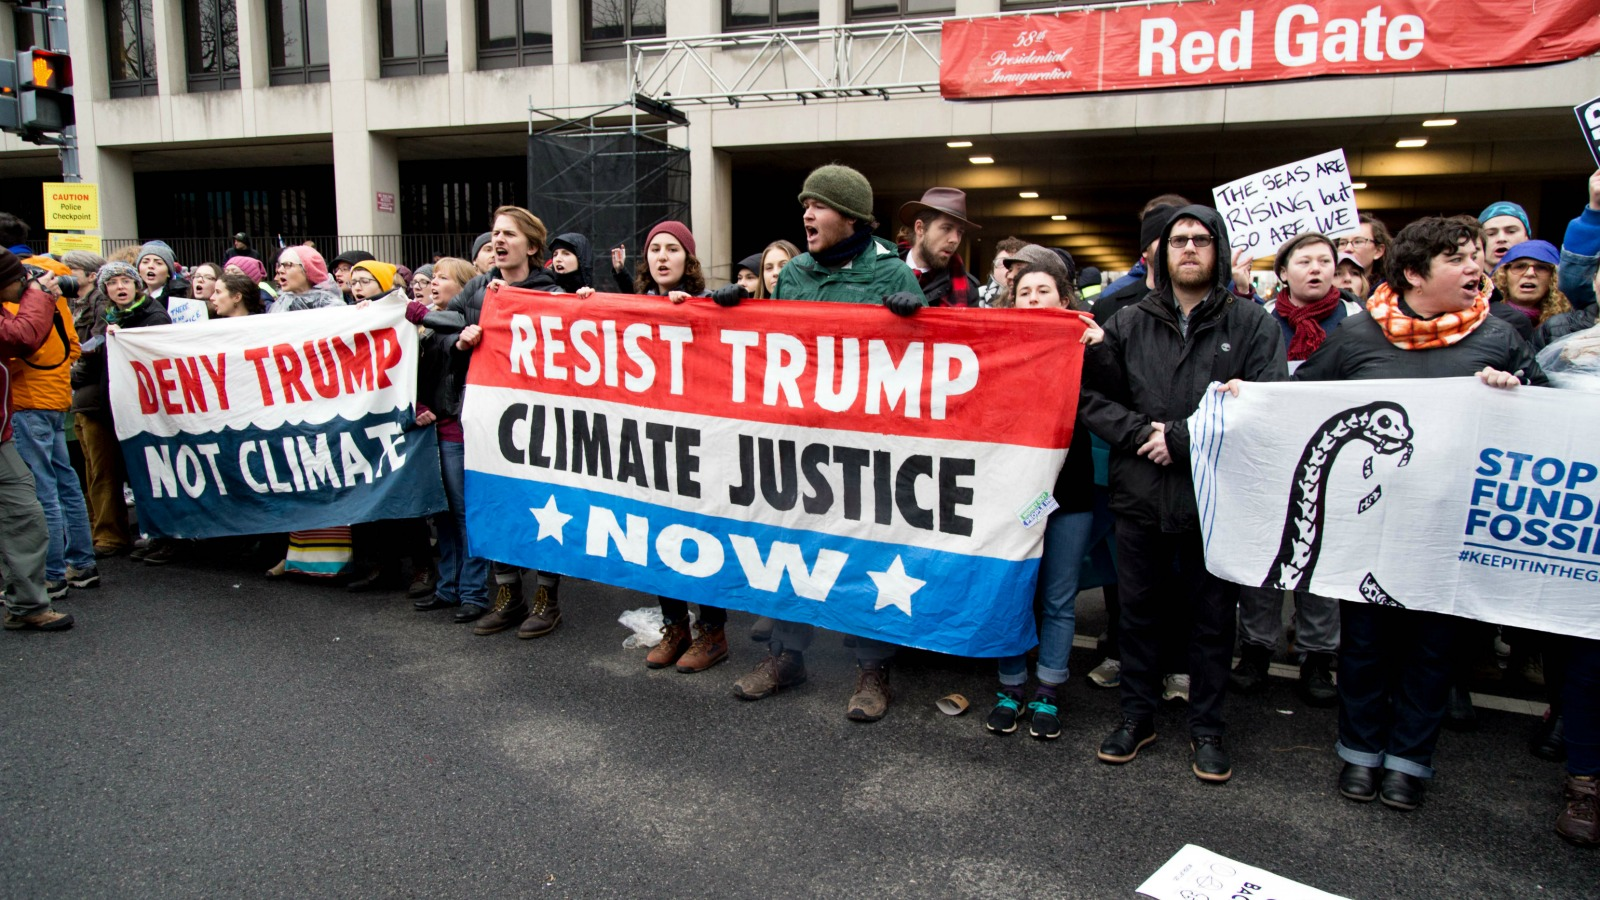 Anti-Trump protests in Washington on Friday frequently focused on his opposition to climate regulations.